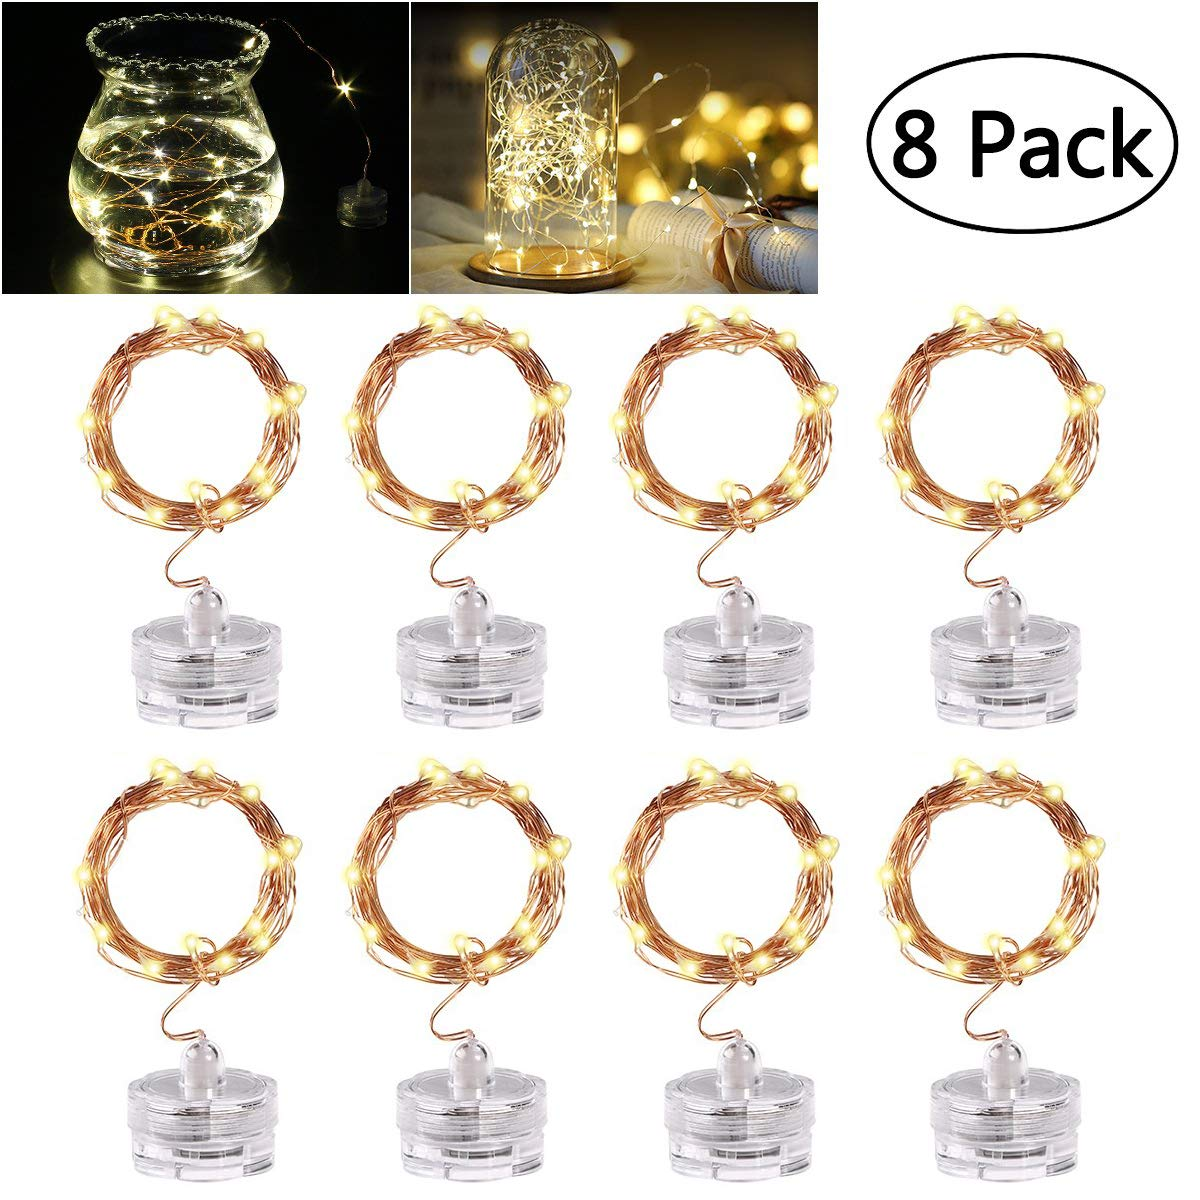 8 Pack Fairy String Lights, YUNLIGHTS 6.5Ft 20 LED Battery Operated Firefly String Lights on Flexible Copper Wire, IP65 Waterproof Twinkle Lights for Wedding Party Bedroom Patio Christmas (Warm Light)